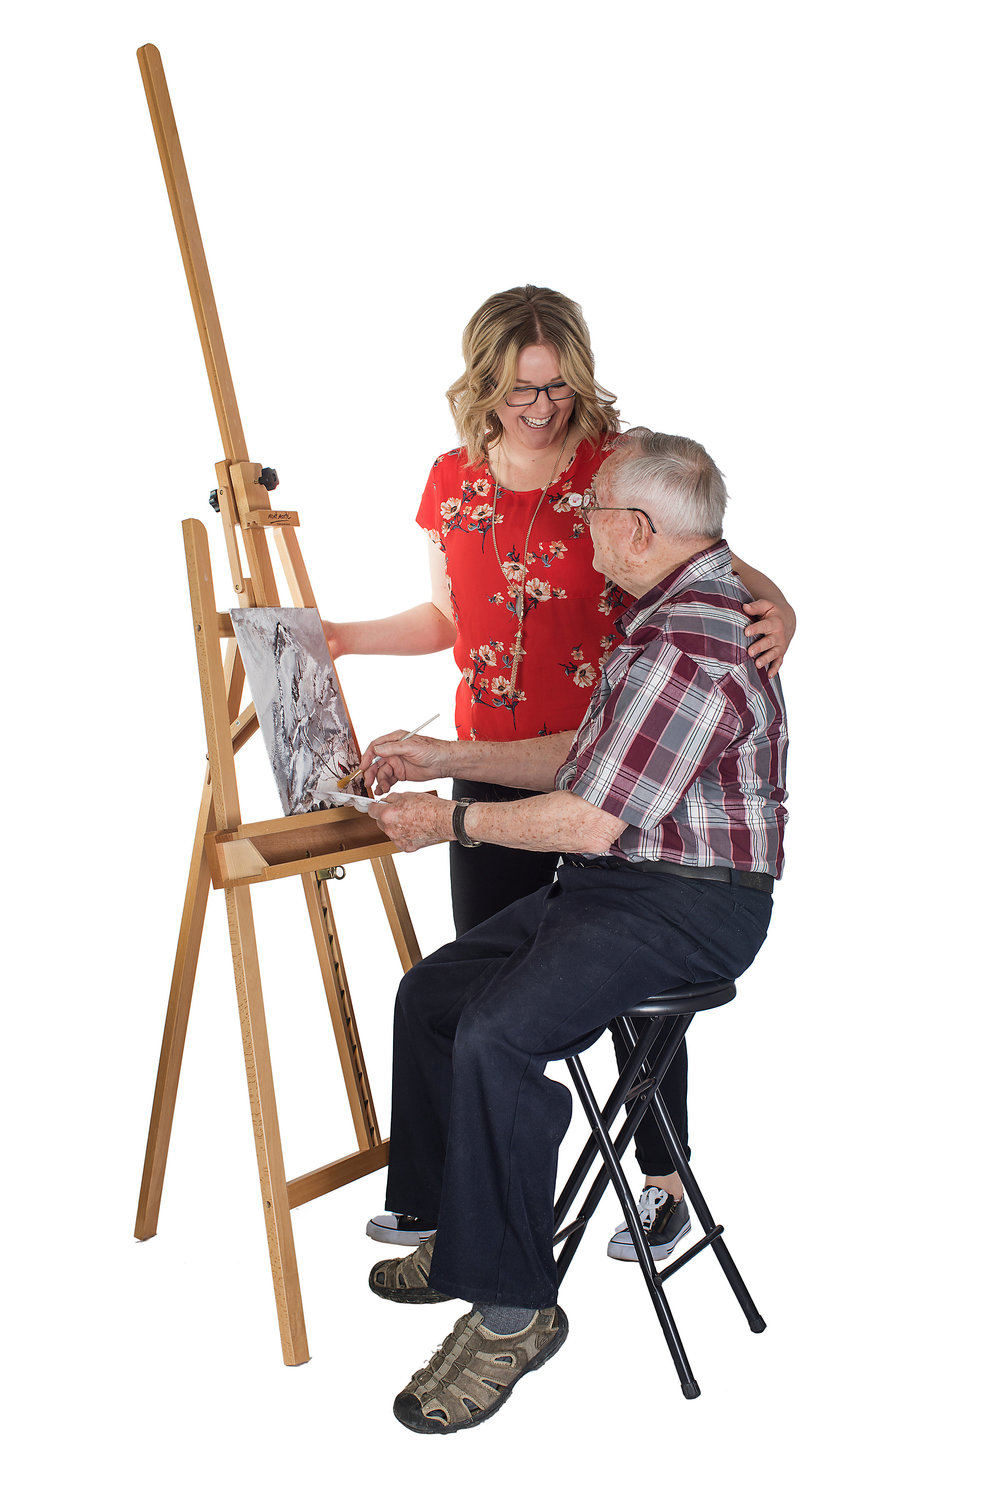 ART STUDIOS - Research suggests that even when the brain is deteriorating and causing impairments in thinking, memory, and judgement; individuals can visually communicate through the creative center of the brain even when they are no longer verbal.  Teaching artists facilitate hands on learning experiences in painting, mixed media, sculpting, and woodworking.